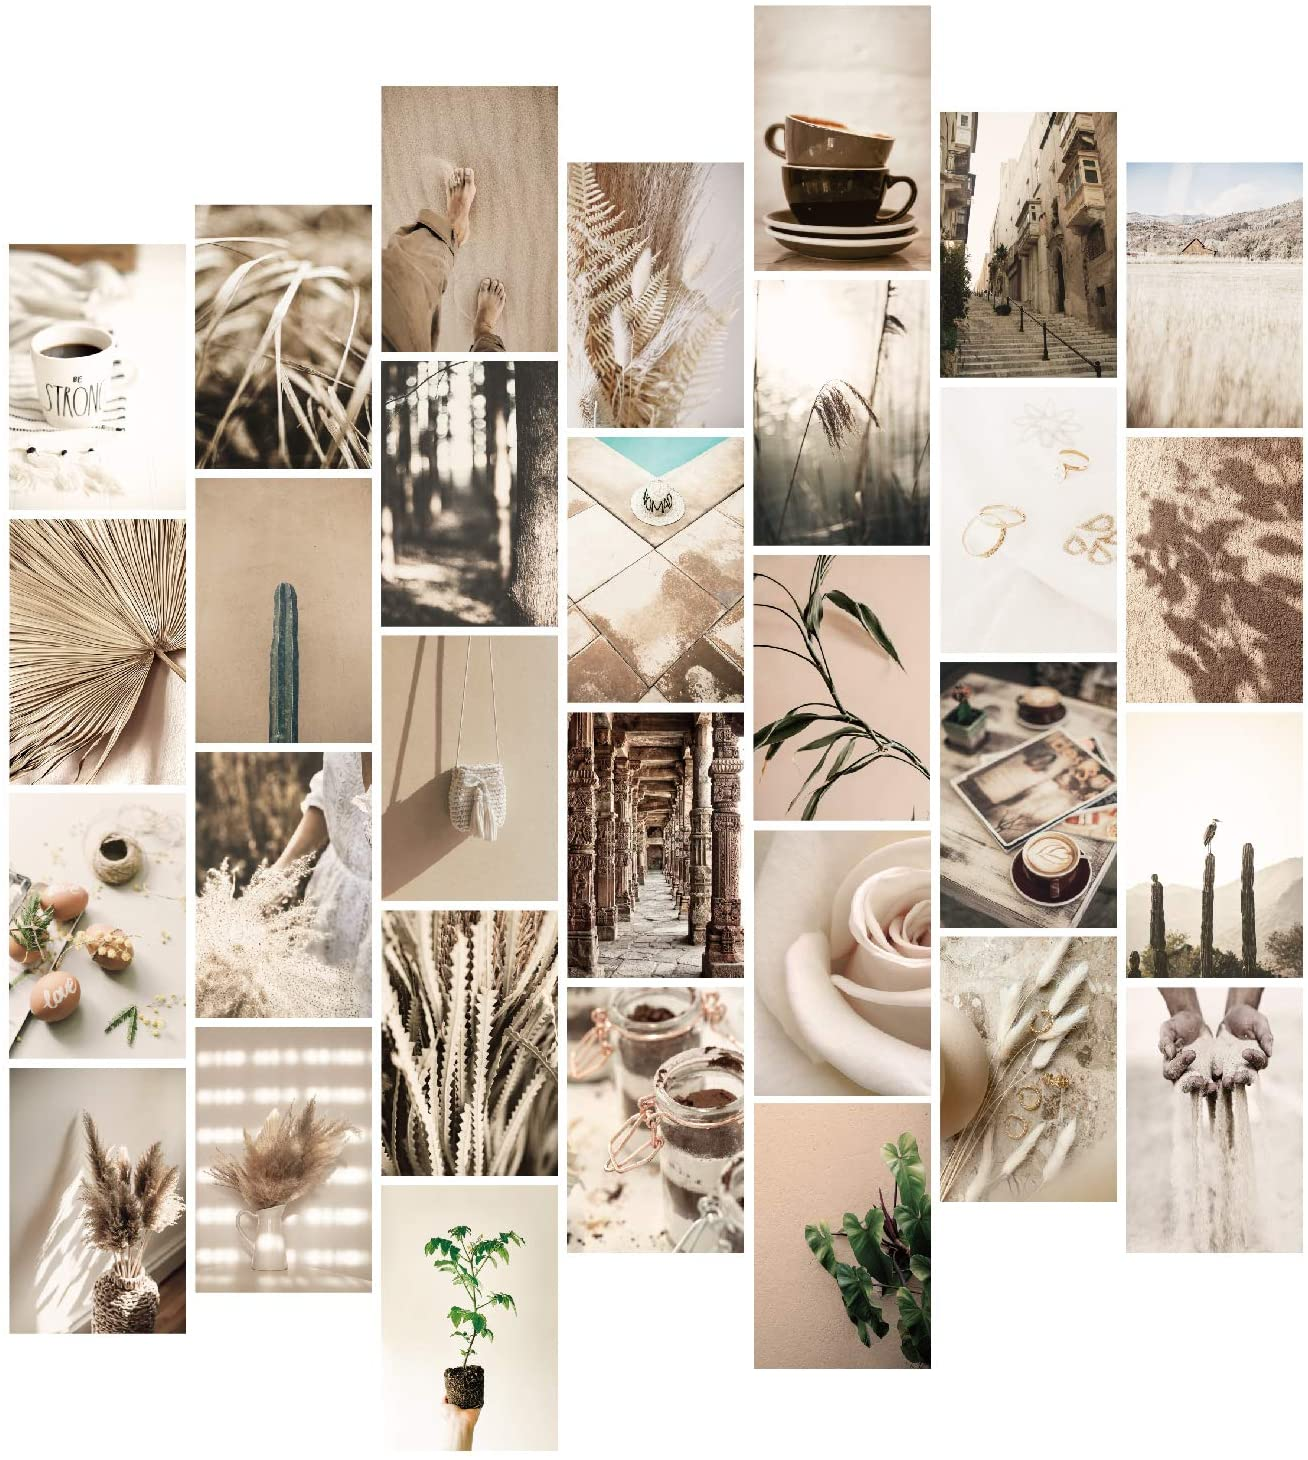 YUMKNOW Aesthetic Wall Collage Kit - 4x6 inch Set of 30, Boho Room Decor for Bedroom Aesthetic, Modern Minimalist Wall Art Photo Pictures, Neutral Beige Cottagecore Kawaii Posters for Dorm Apartment